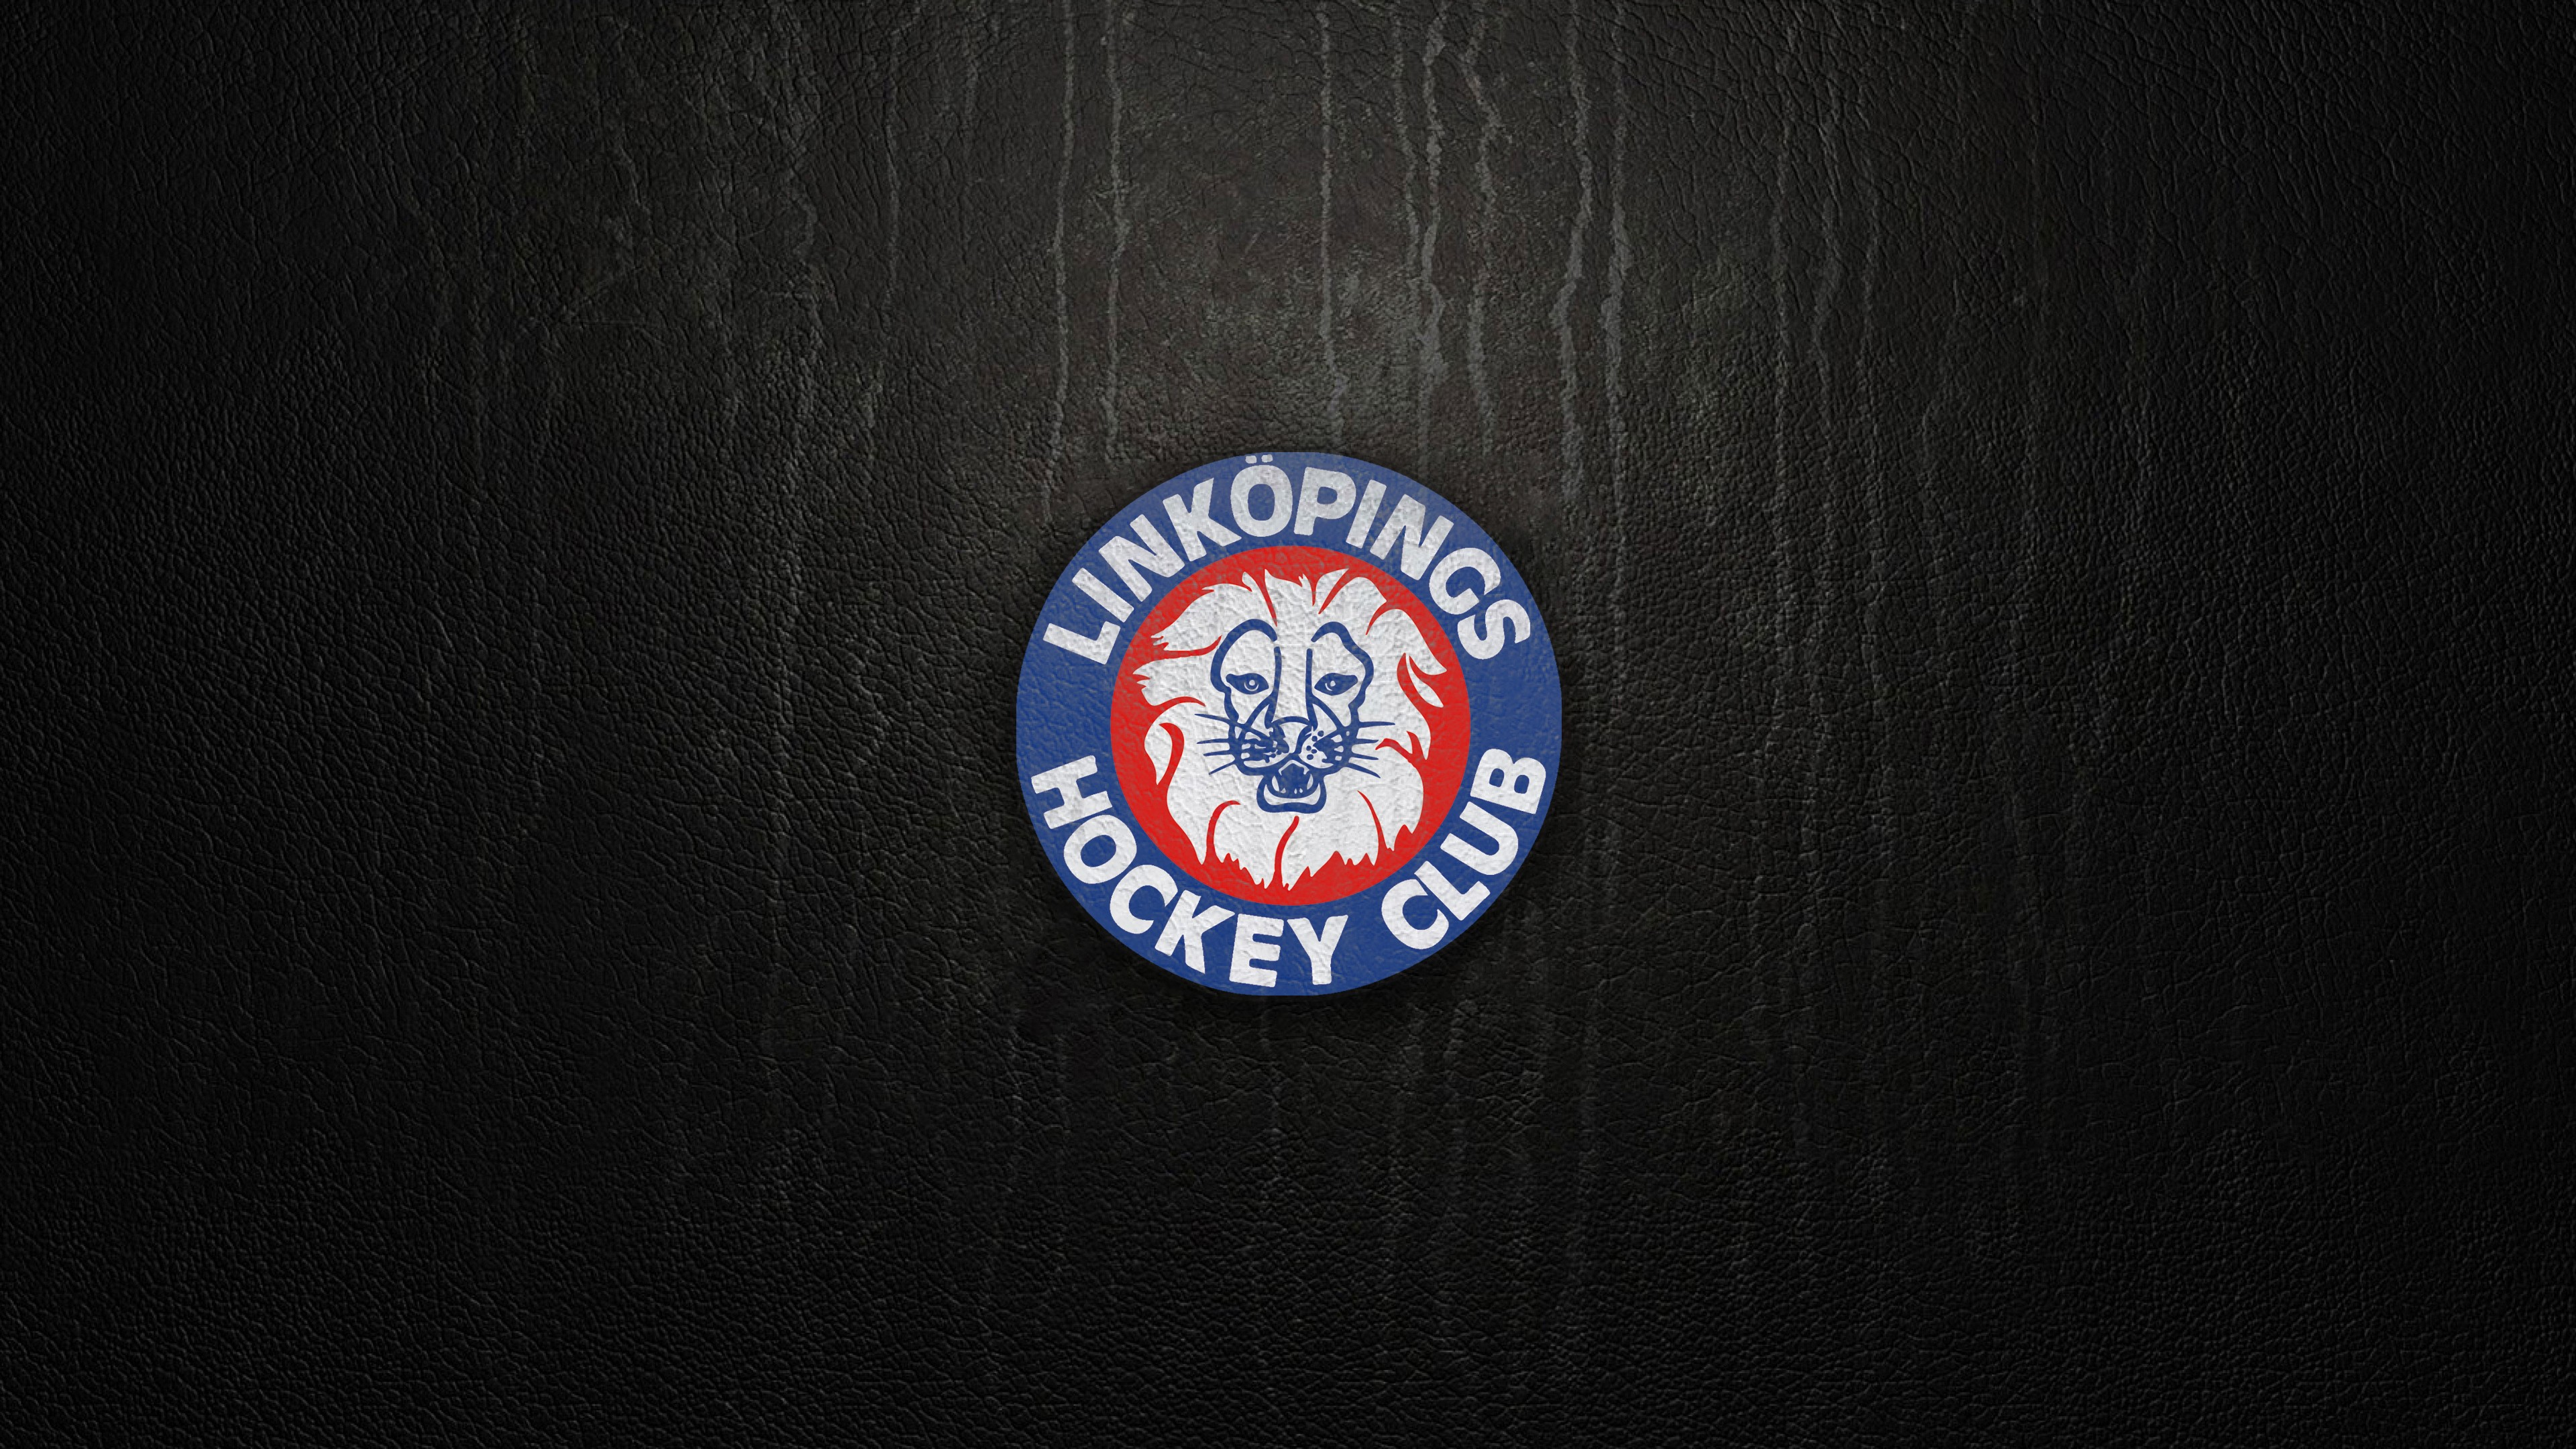 linkopings hockey club 1538786737 - Linkopings Hockey Club - sports wallpapers, logo wallpapers, hockey wallpapers